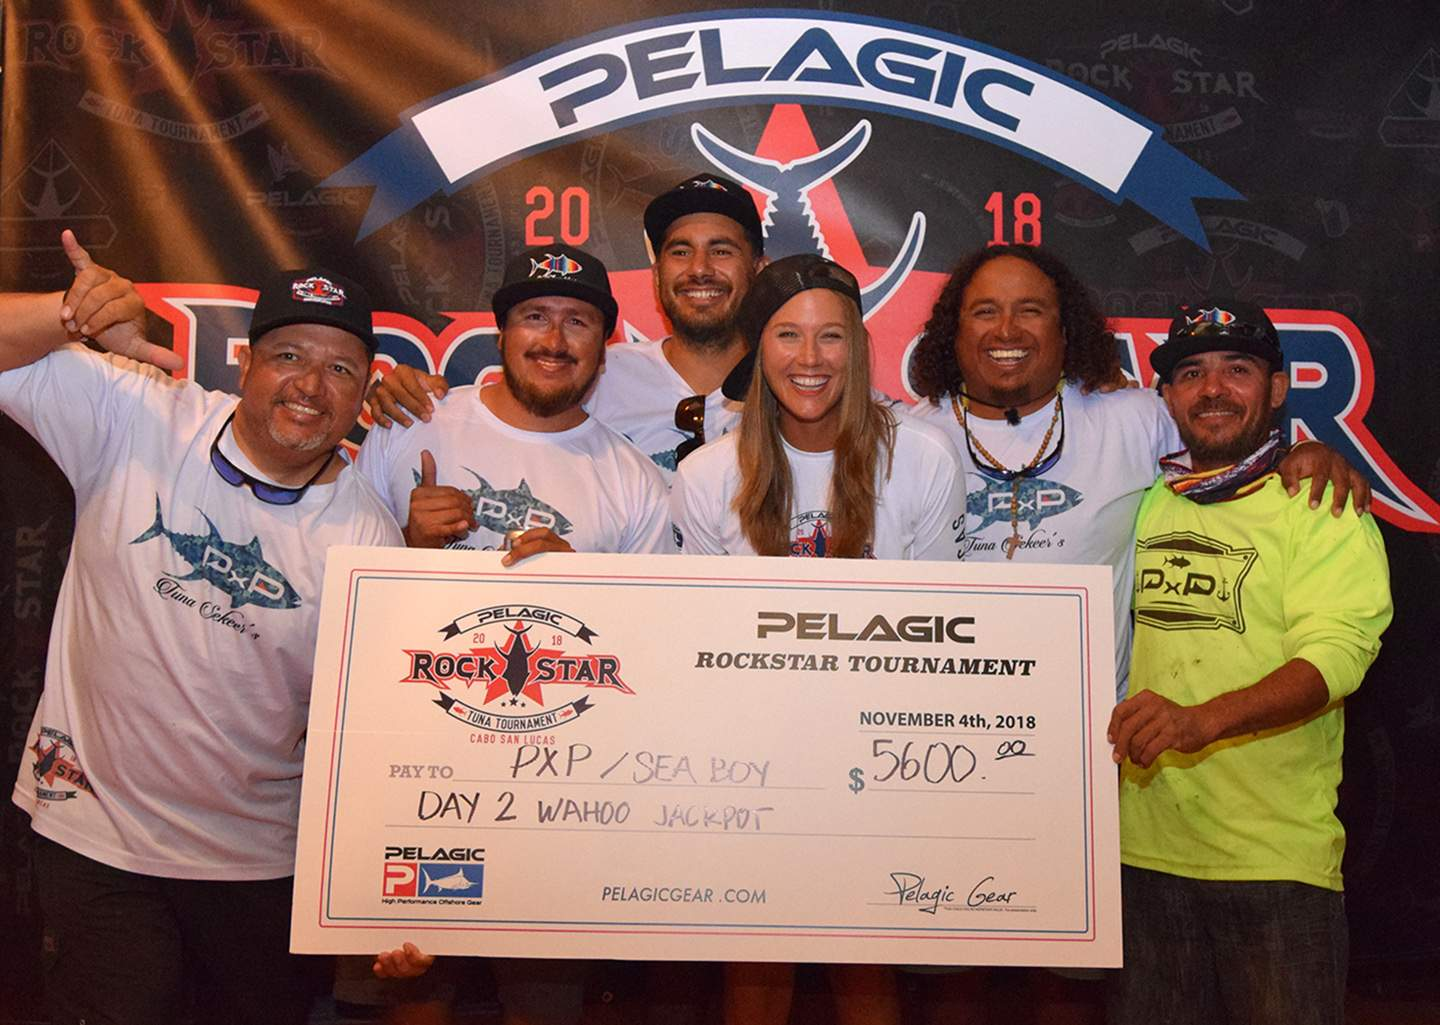 Sea Boy PxP Check Pelagic Rockstar Tuna Tourney